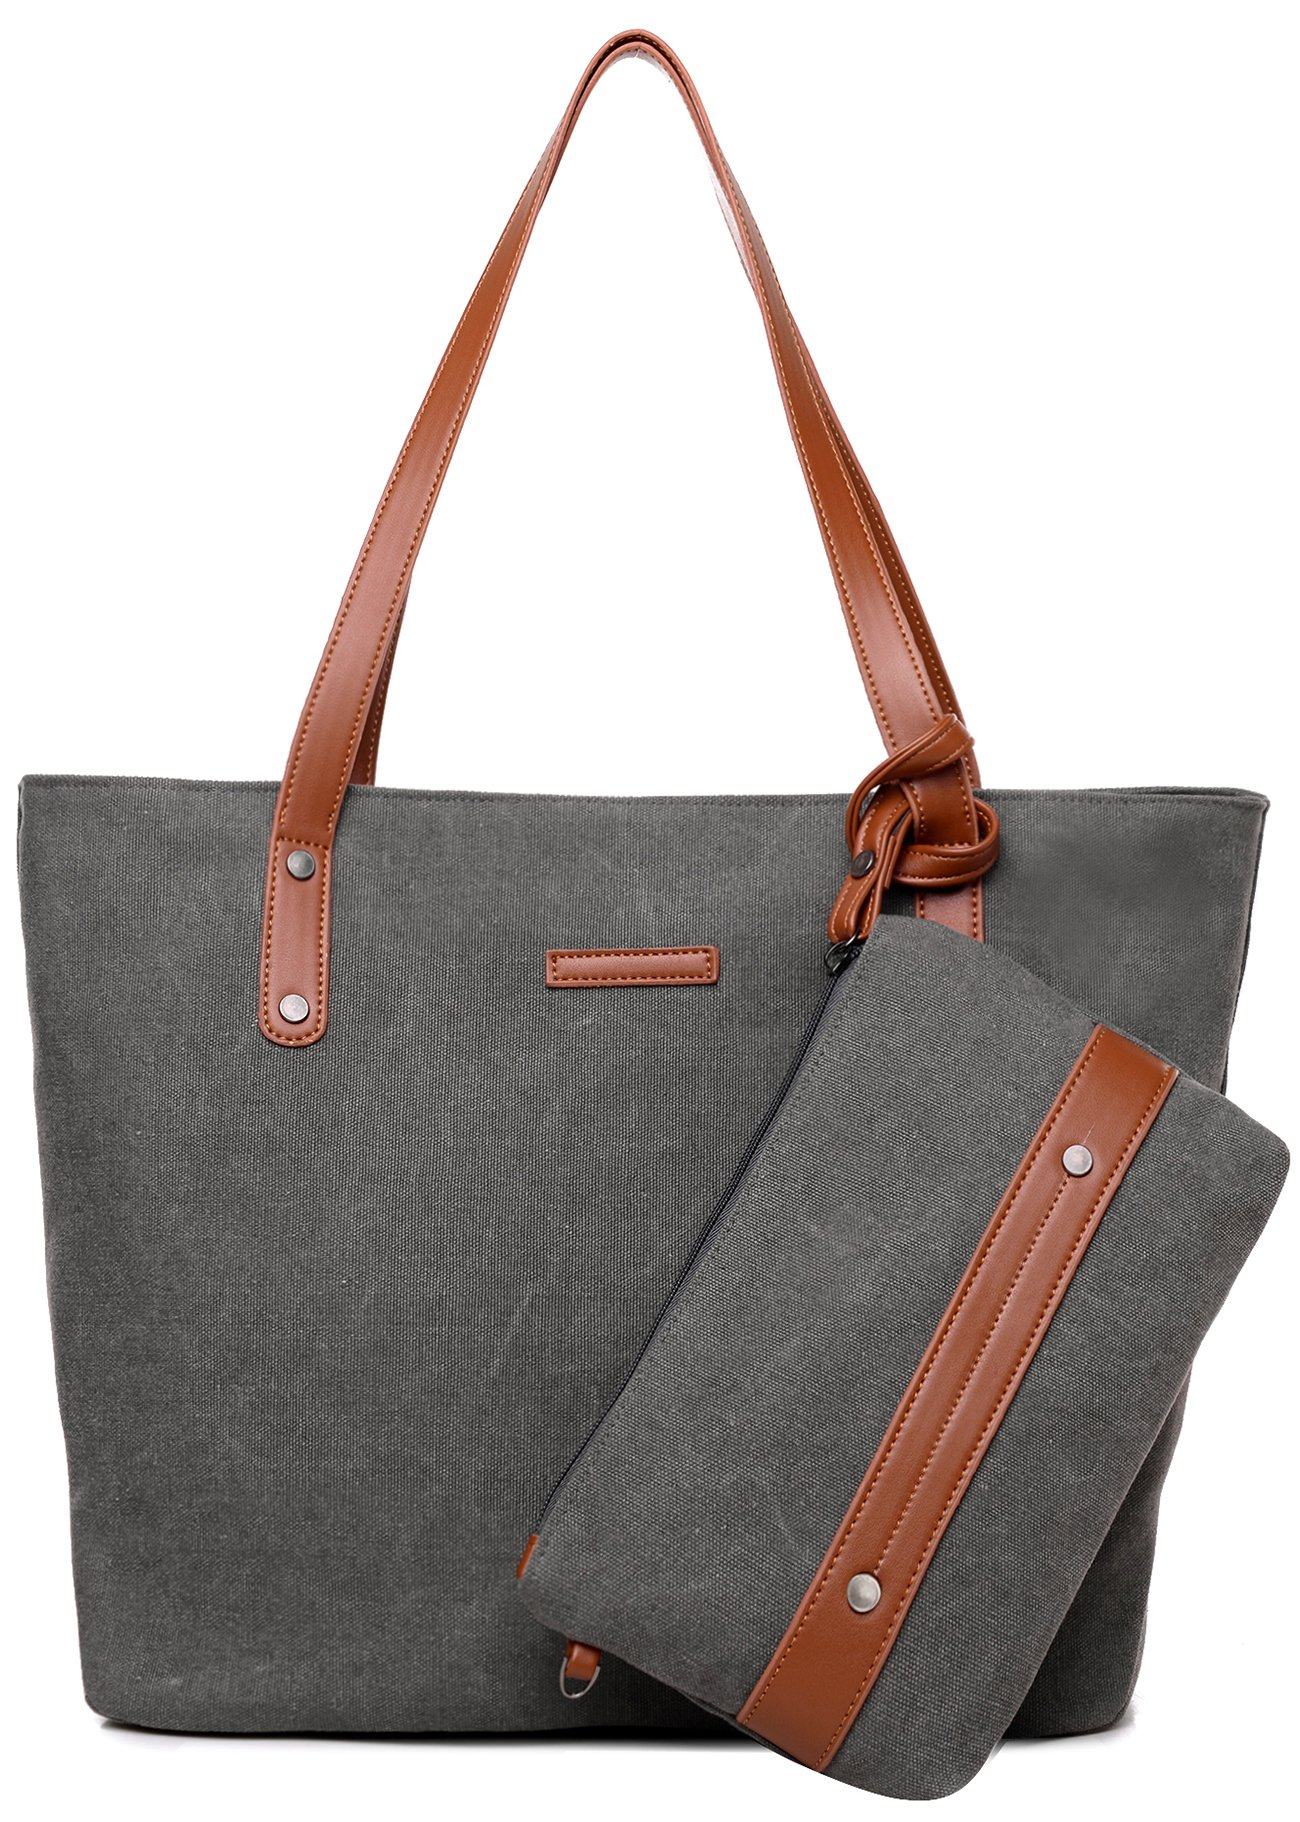 Satchel Handbags and Purses for Women Shoulder Tote Bags Wallets (Grey) by PlasMaller